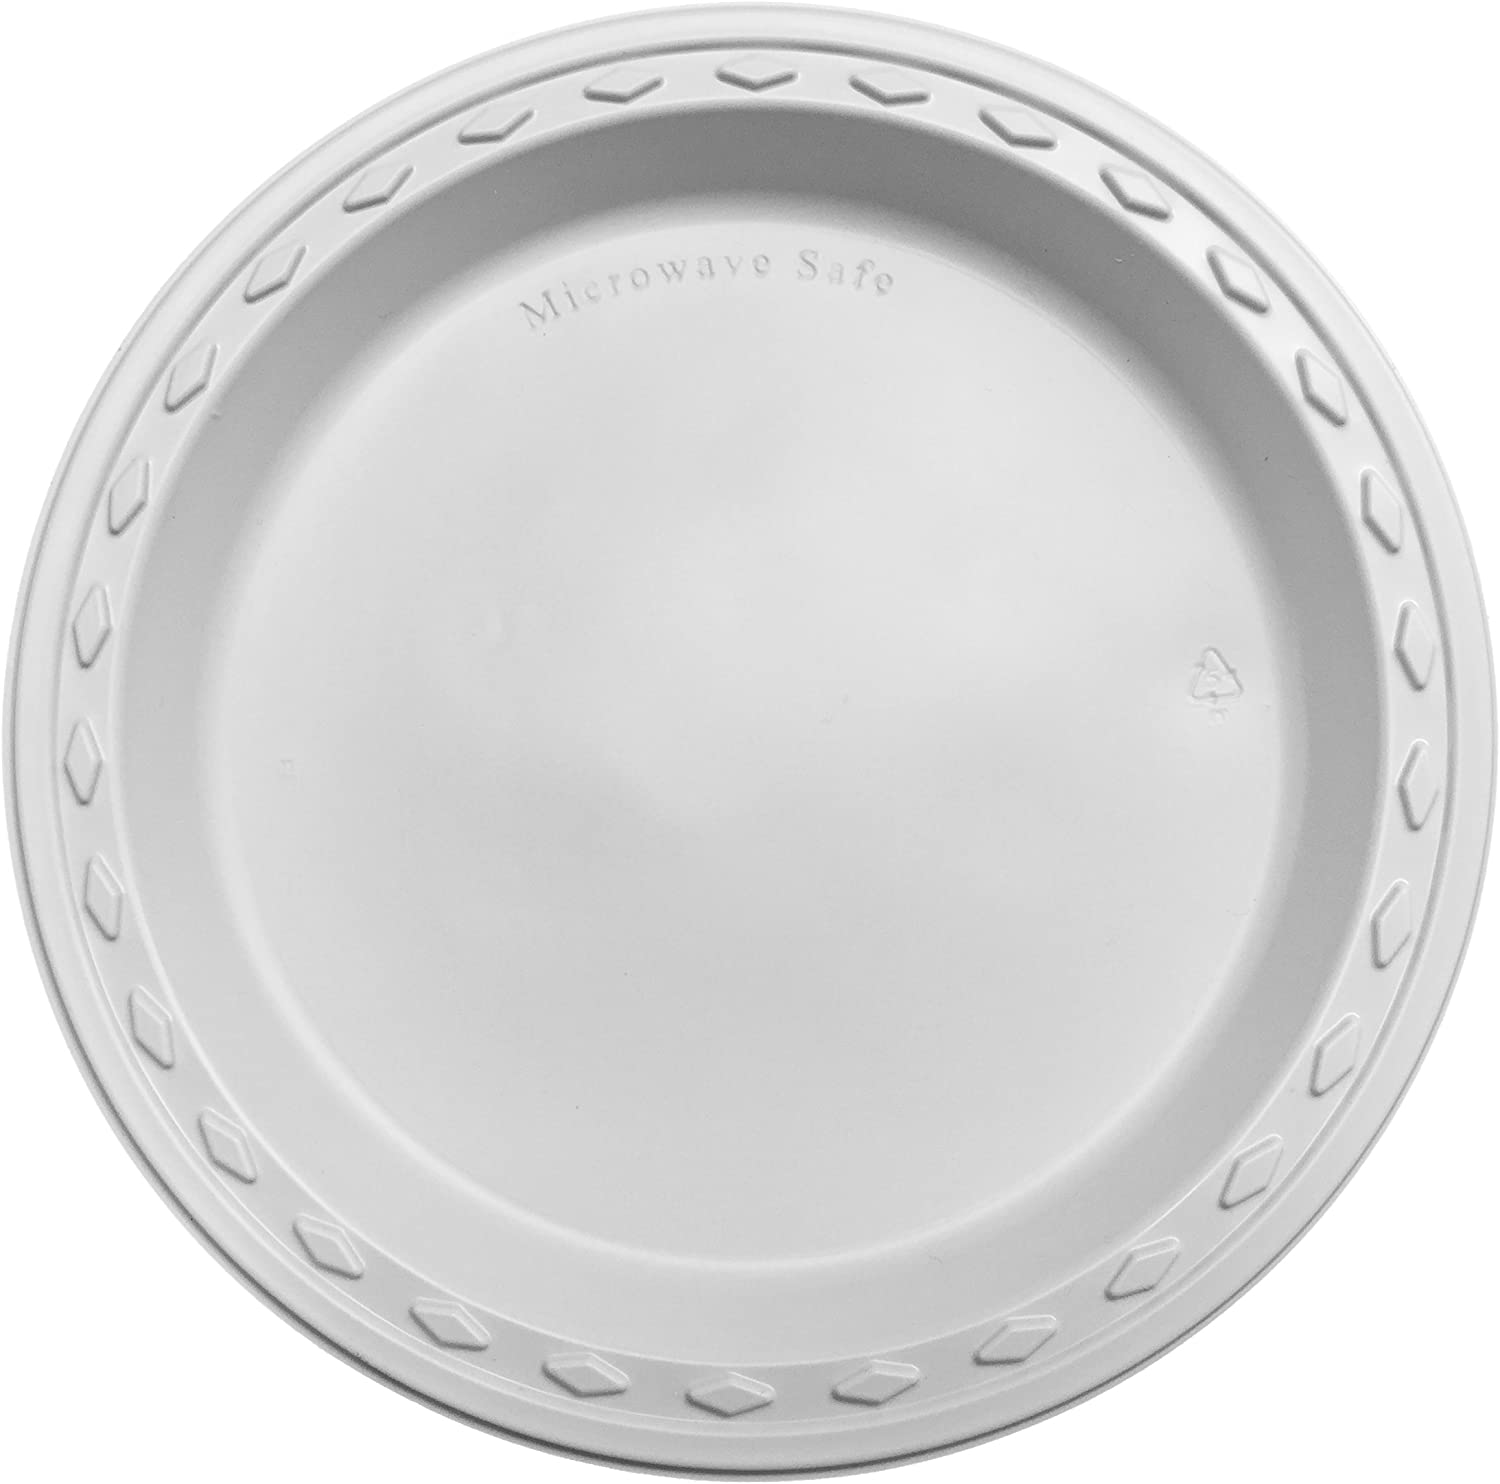 Simply Deliver 10-Inch Plastic Plate, Microwavable and Dishwasher Safe, White, 440-Count